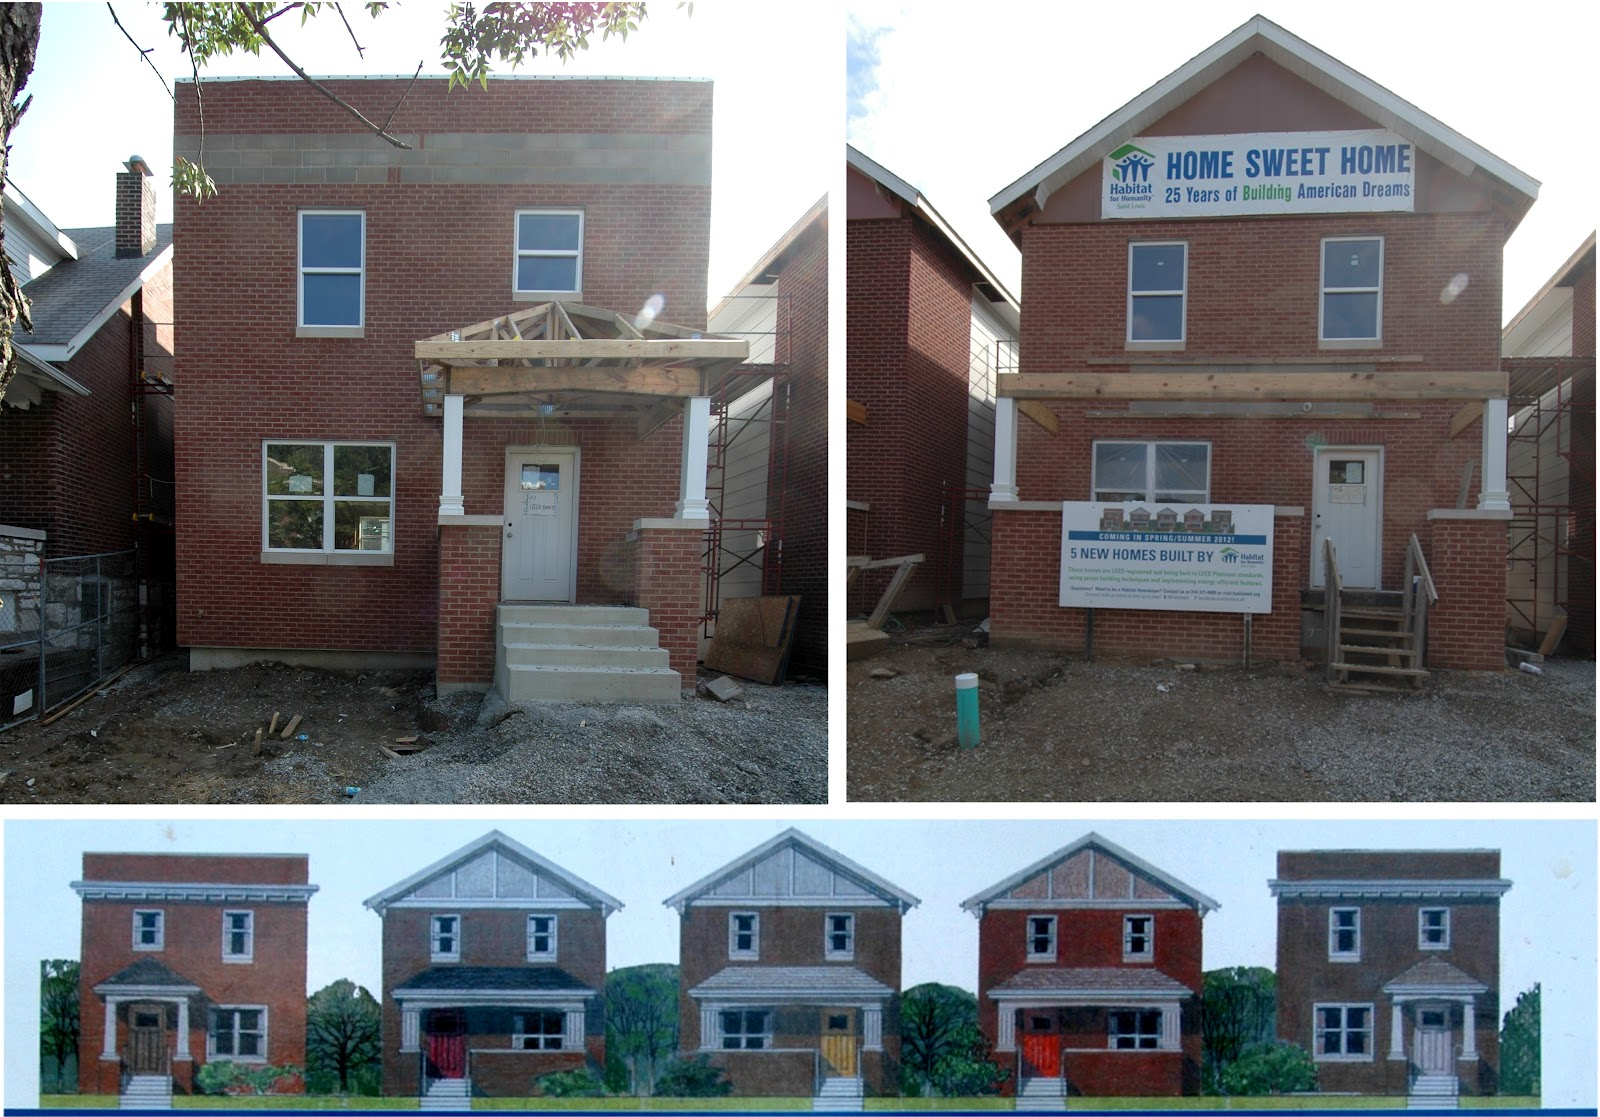 Habitat for Humanity Brings Five New Single Family Homes to Carondelet (1020 through 1032 Bates)